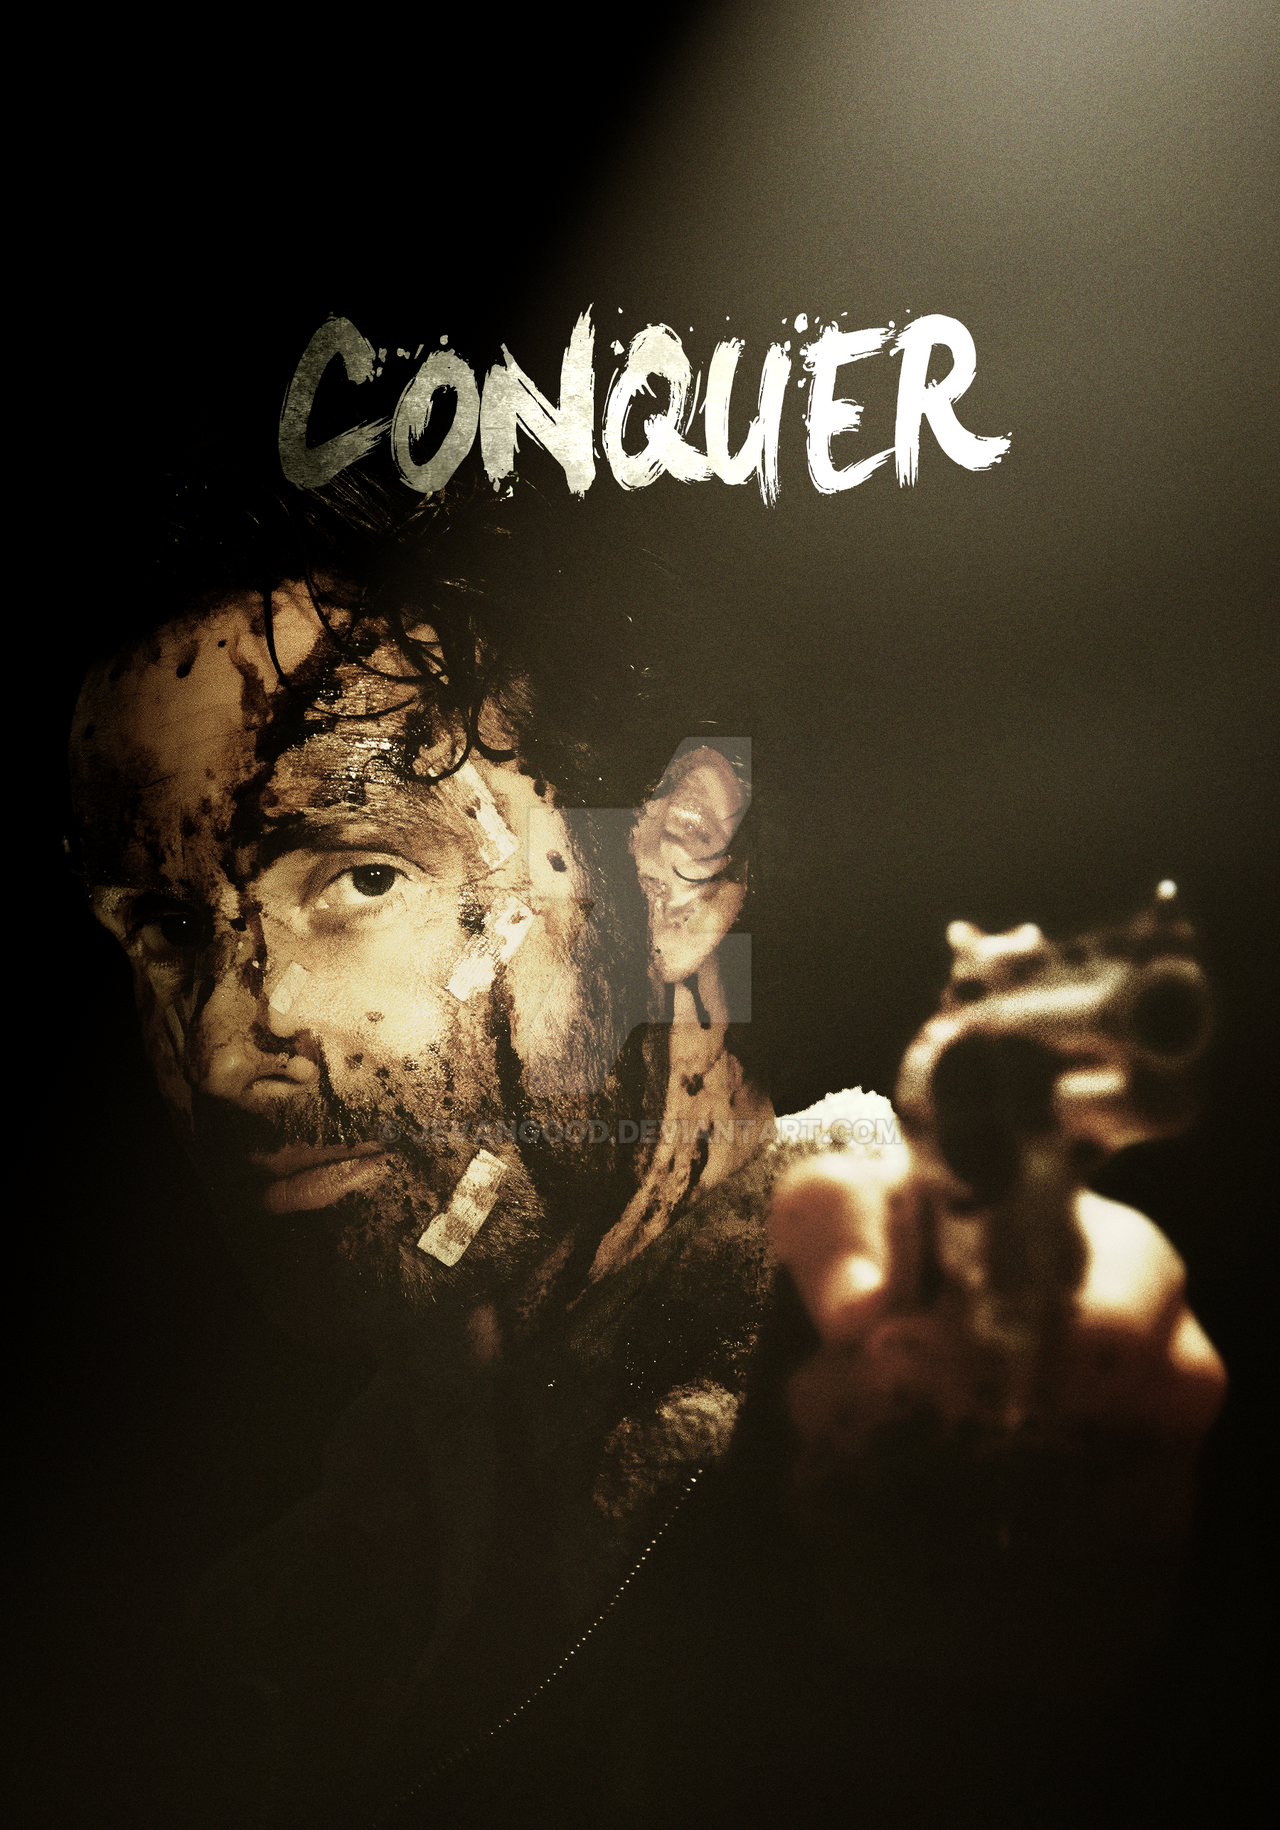 the walking dead - season 6 conquer posterjevangood on deviantart